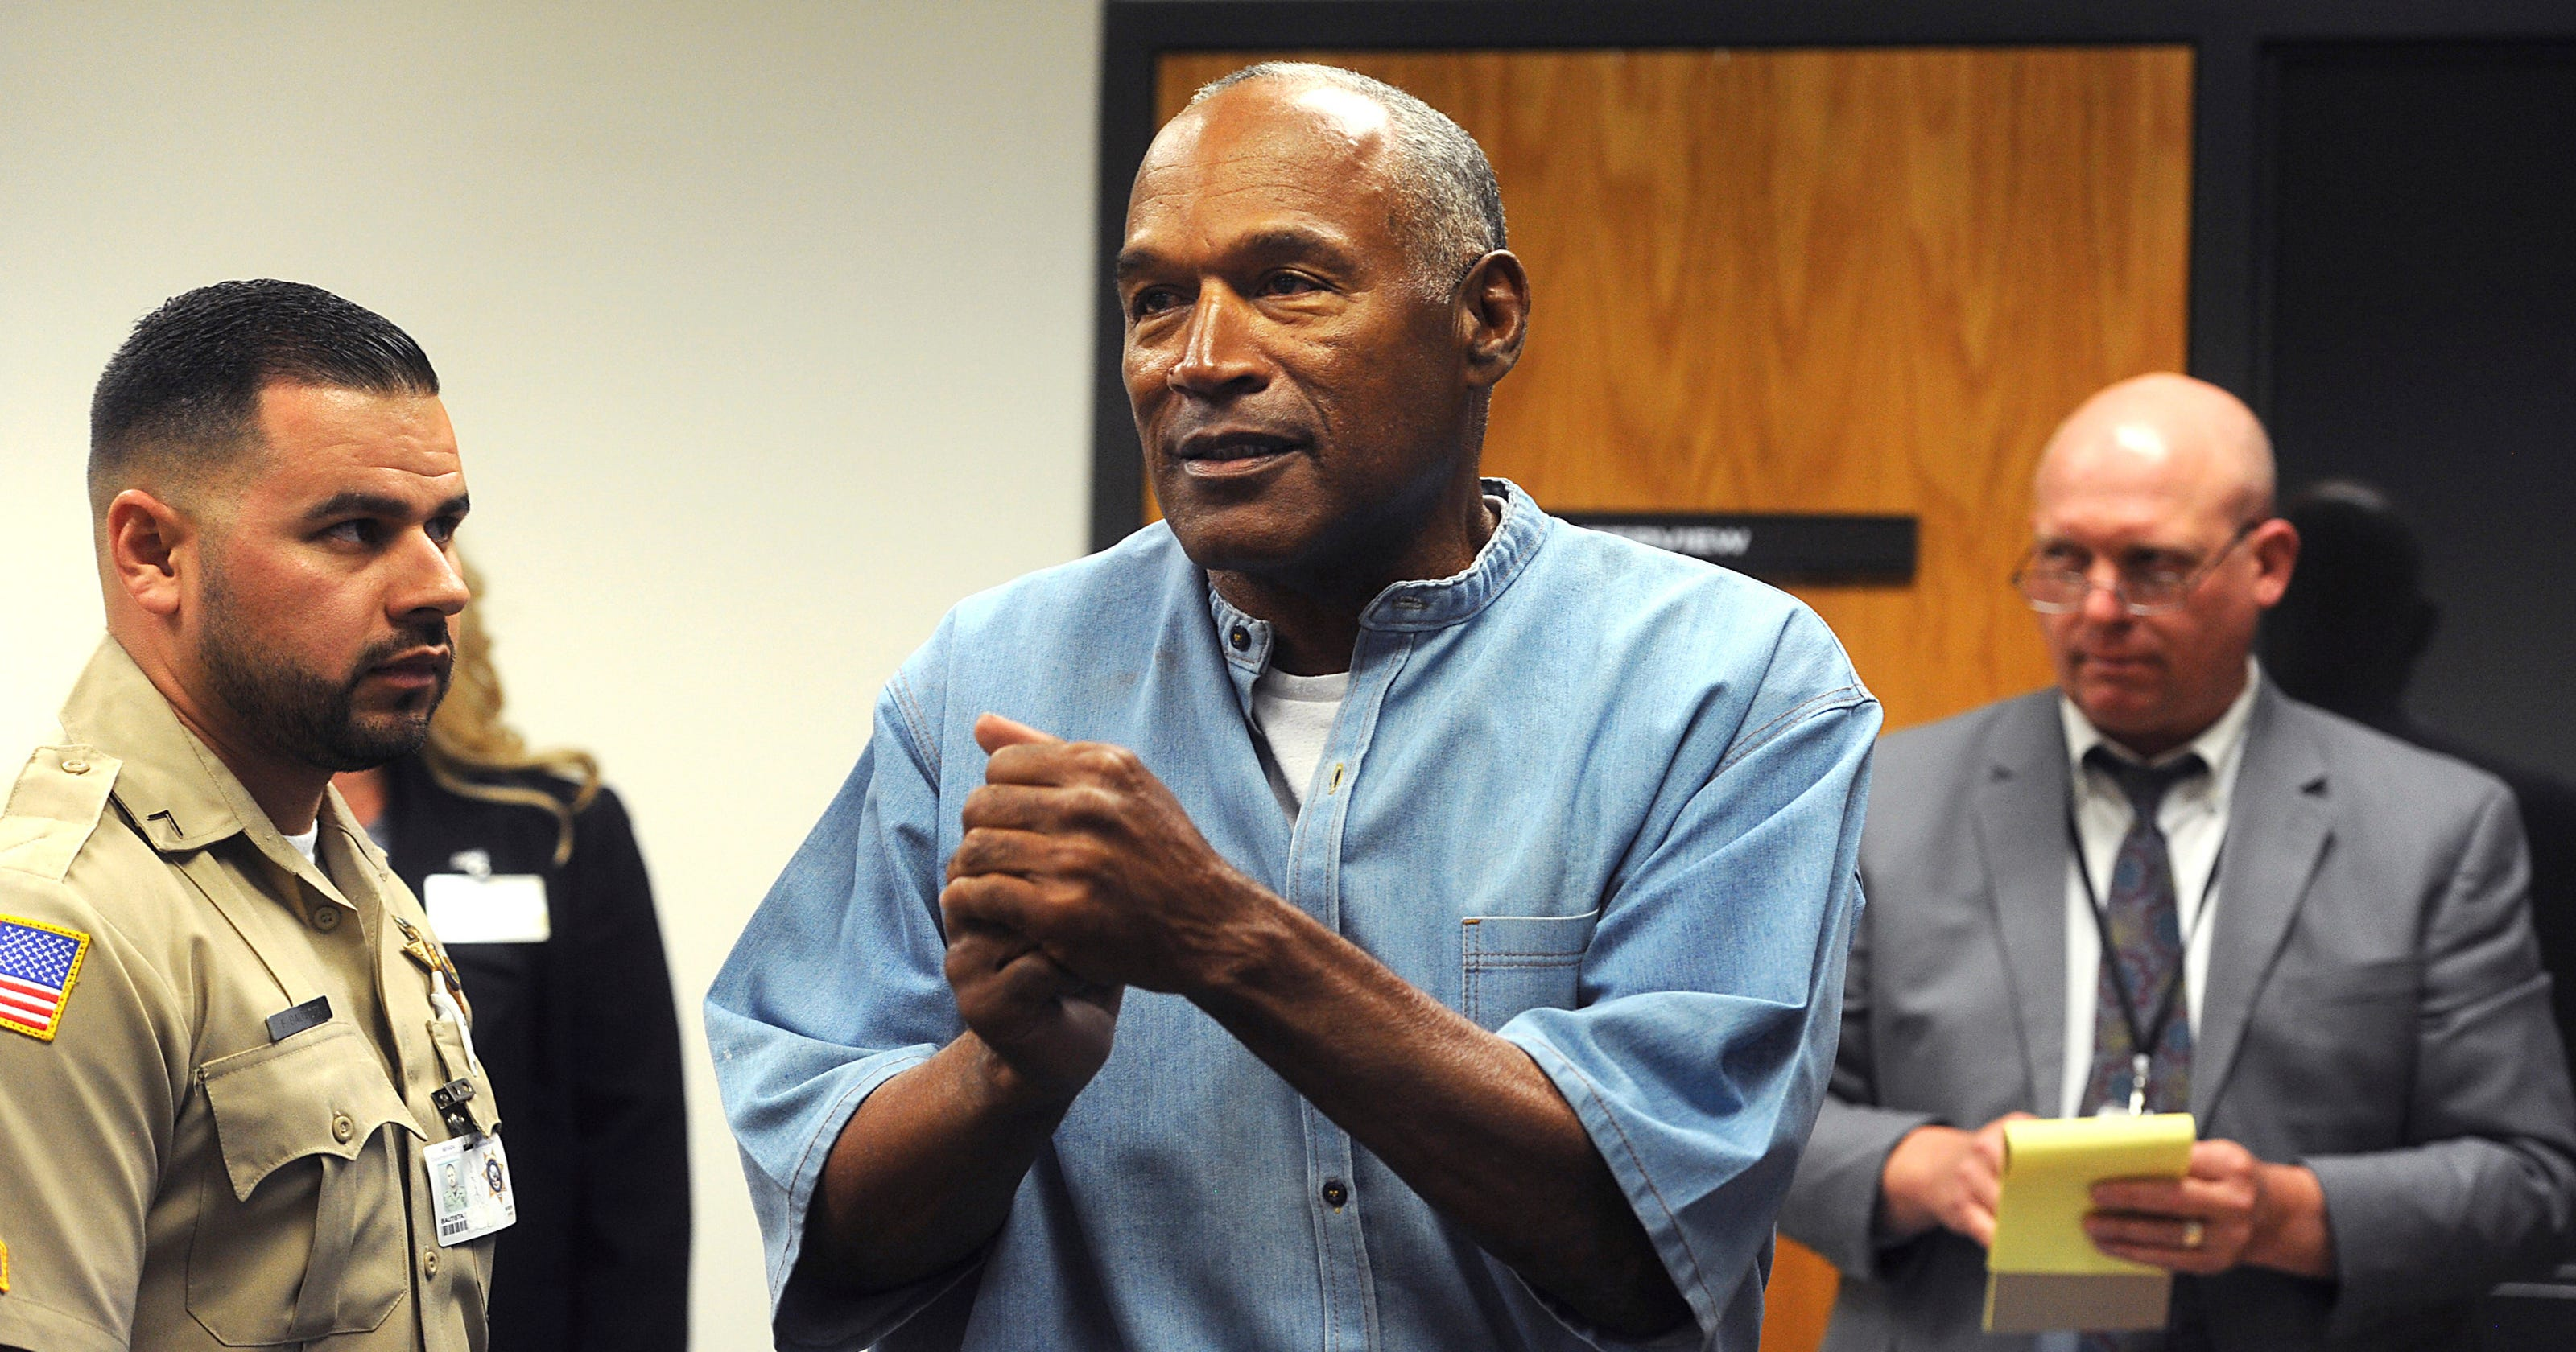 Heres how OJ Simpson made $600,000 when he was in prison